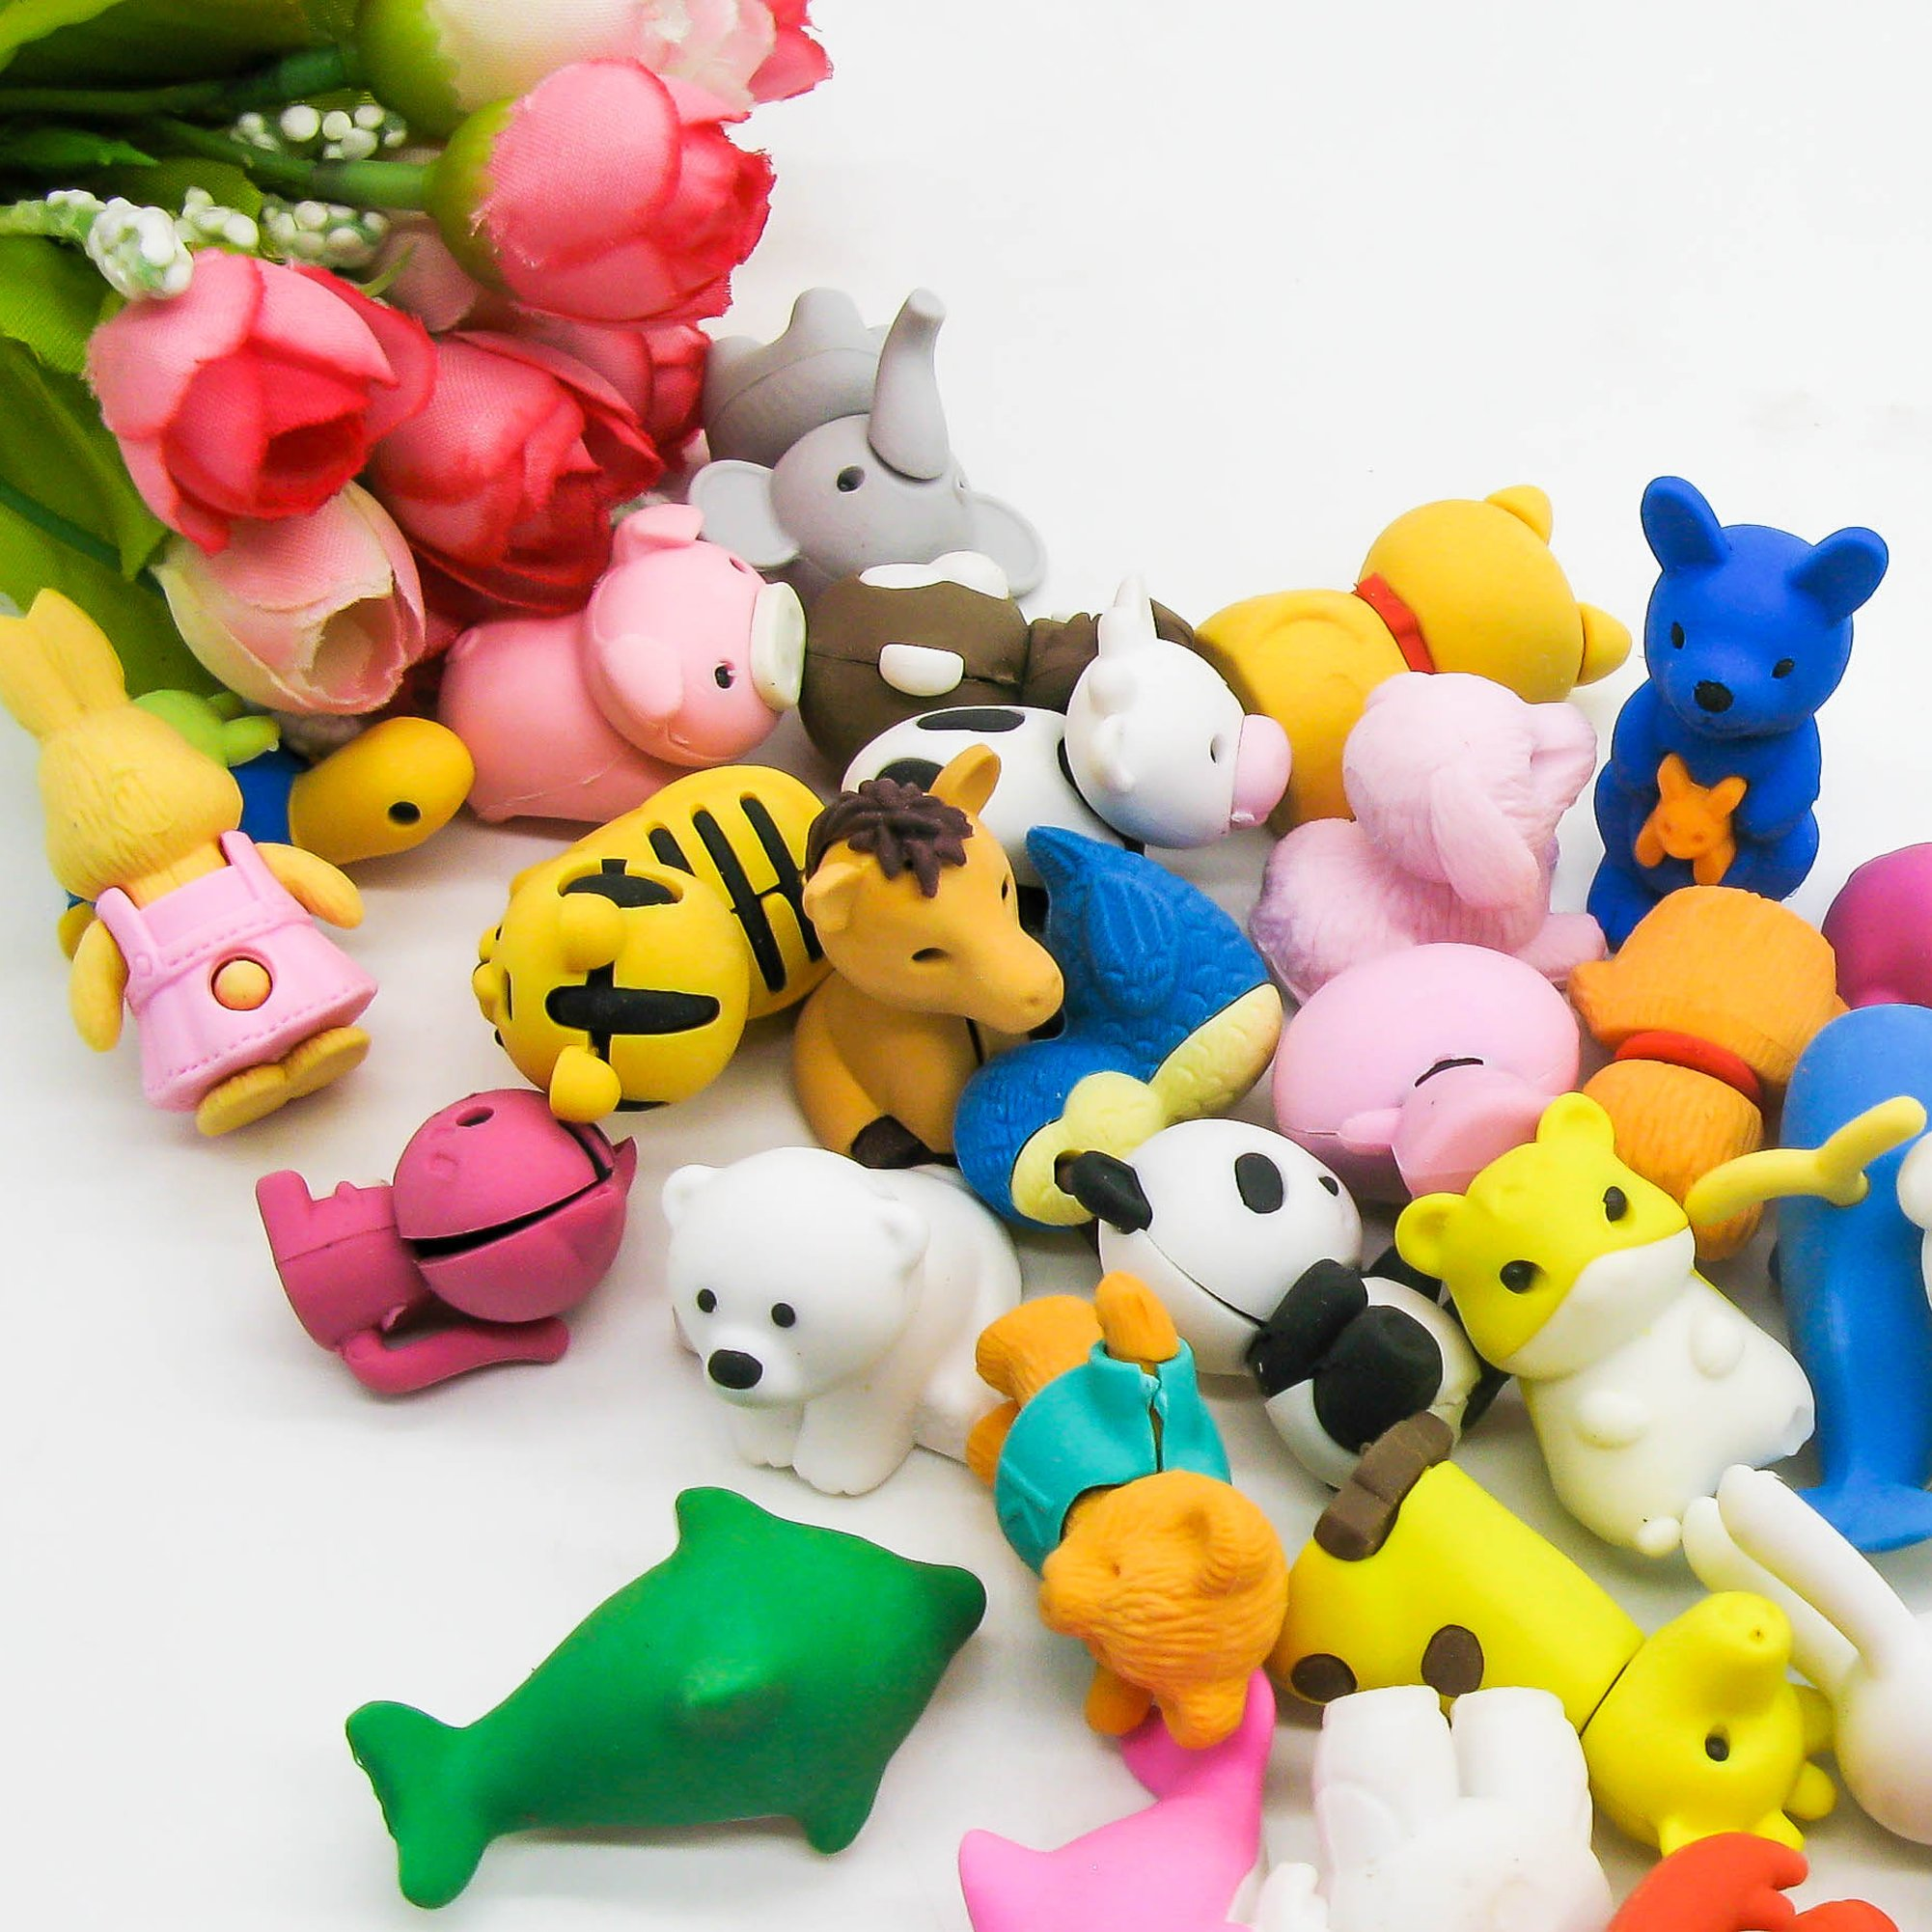 TOAOB 28pcs Adorable Puzzle Animals Erasers Non-Toxic for Kids Fun Games and Collection with Plastic Box by TOAOB (Image #2)